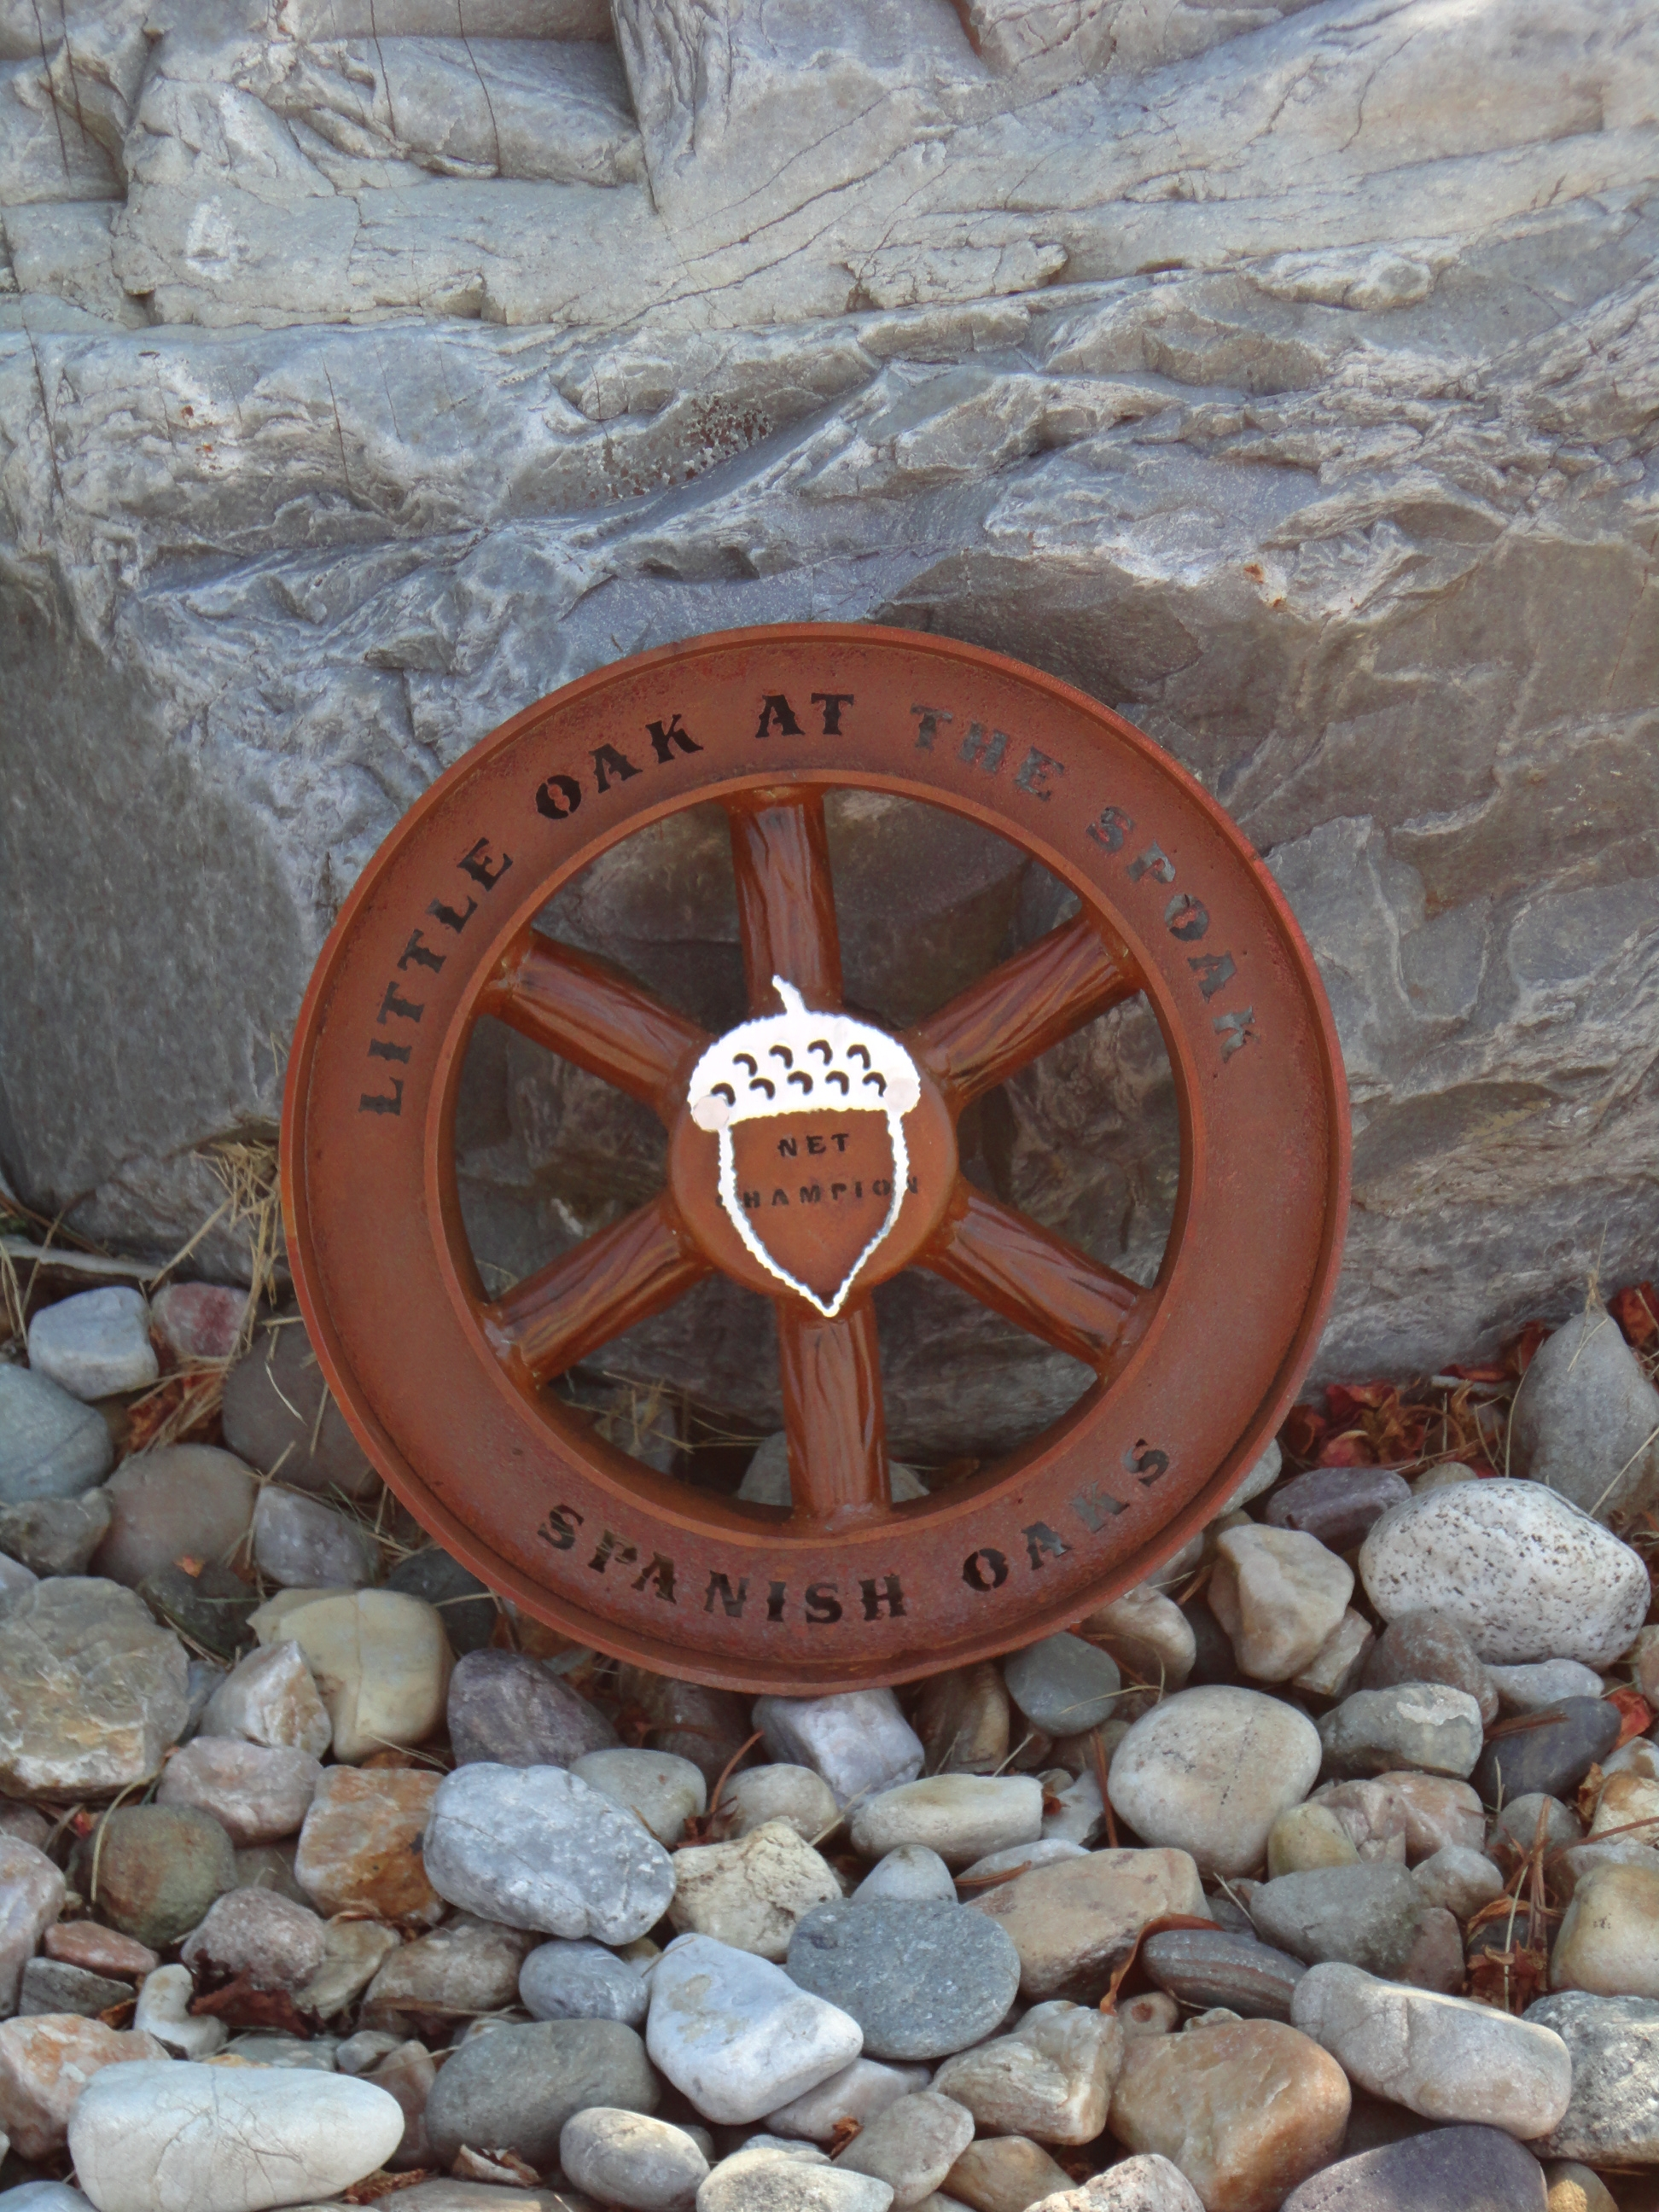 wagon-wheel-golf-trophy-spanish-oaks